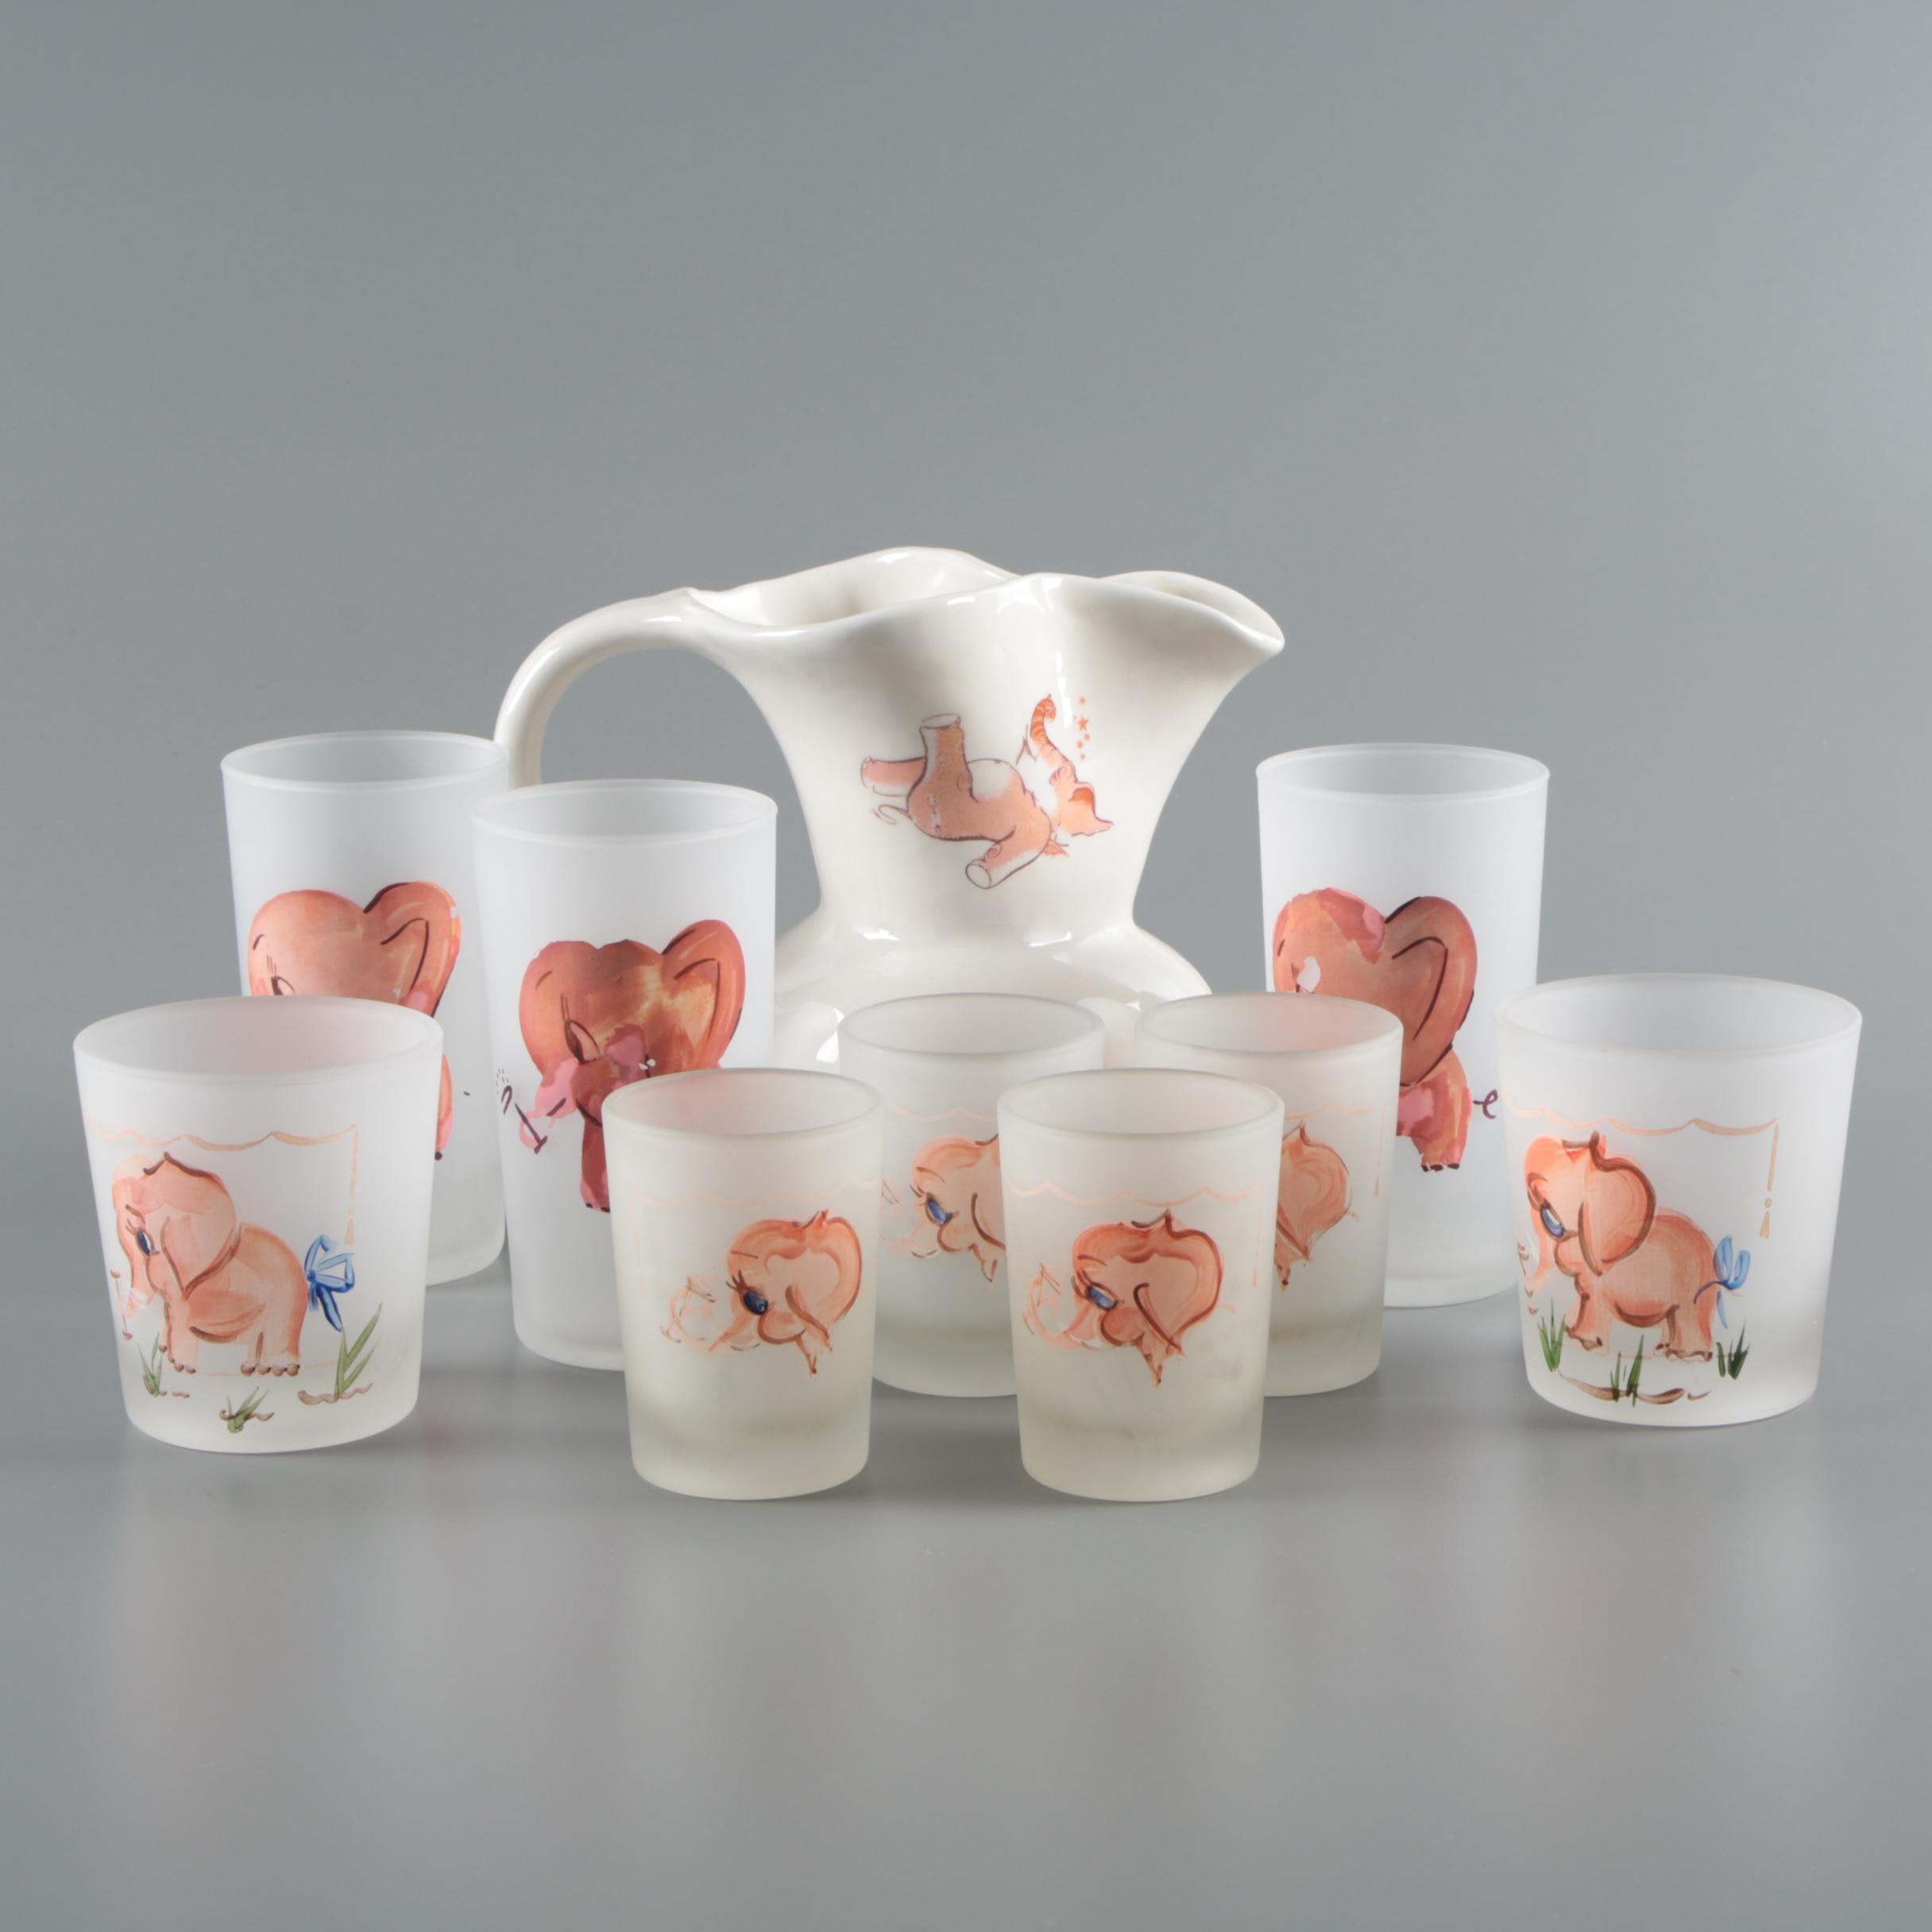 Vintage Pink Elephant Hand-Painted Frosted Glassware with Ceramic Pitcher